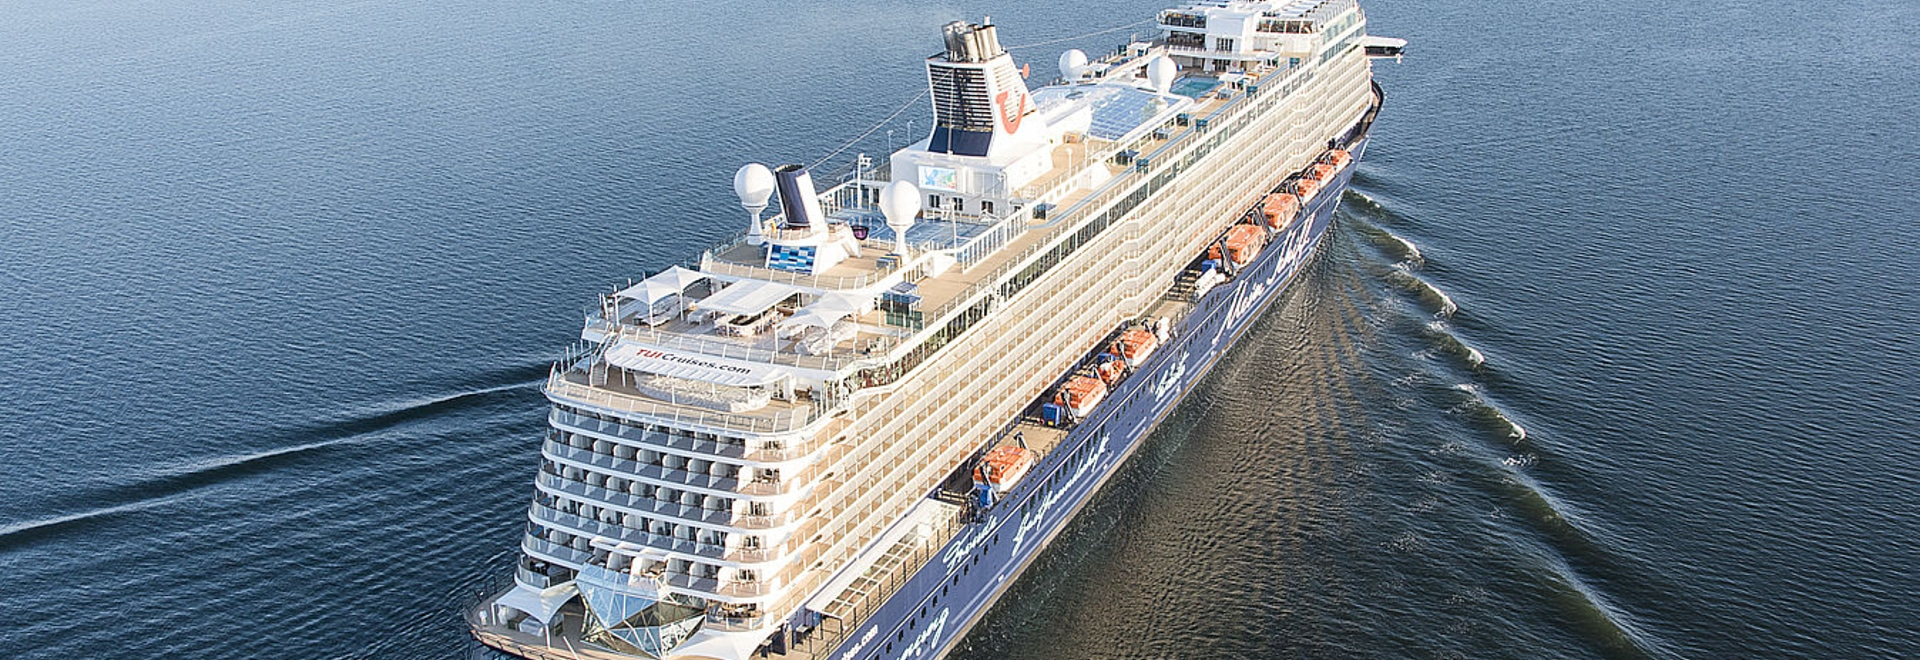 Carnival Corporation orders two cruise ships from Meyer Turku